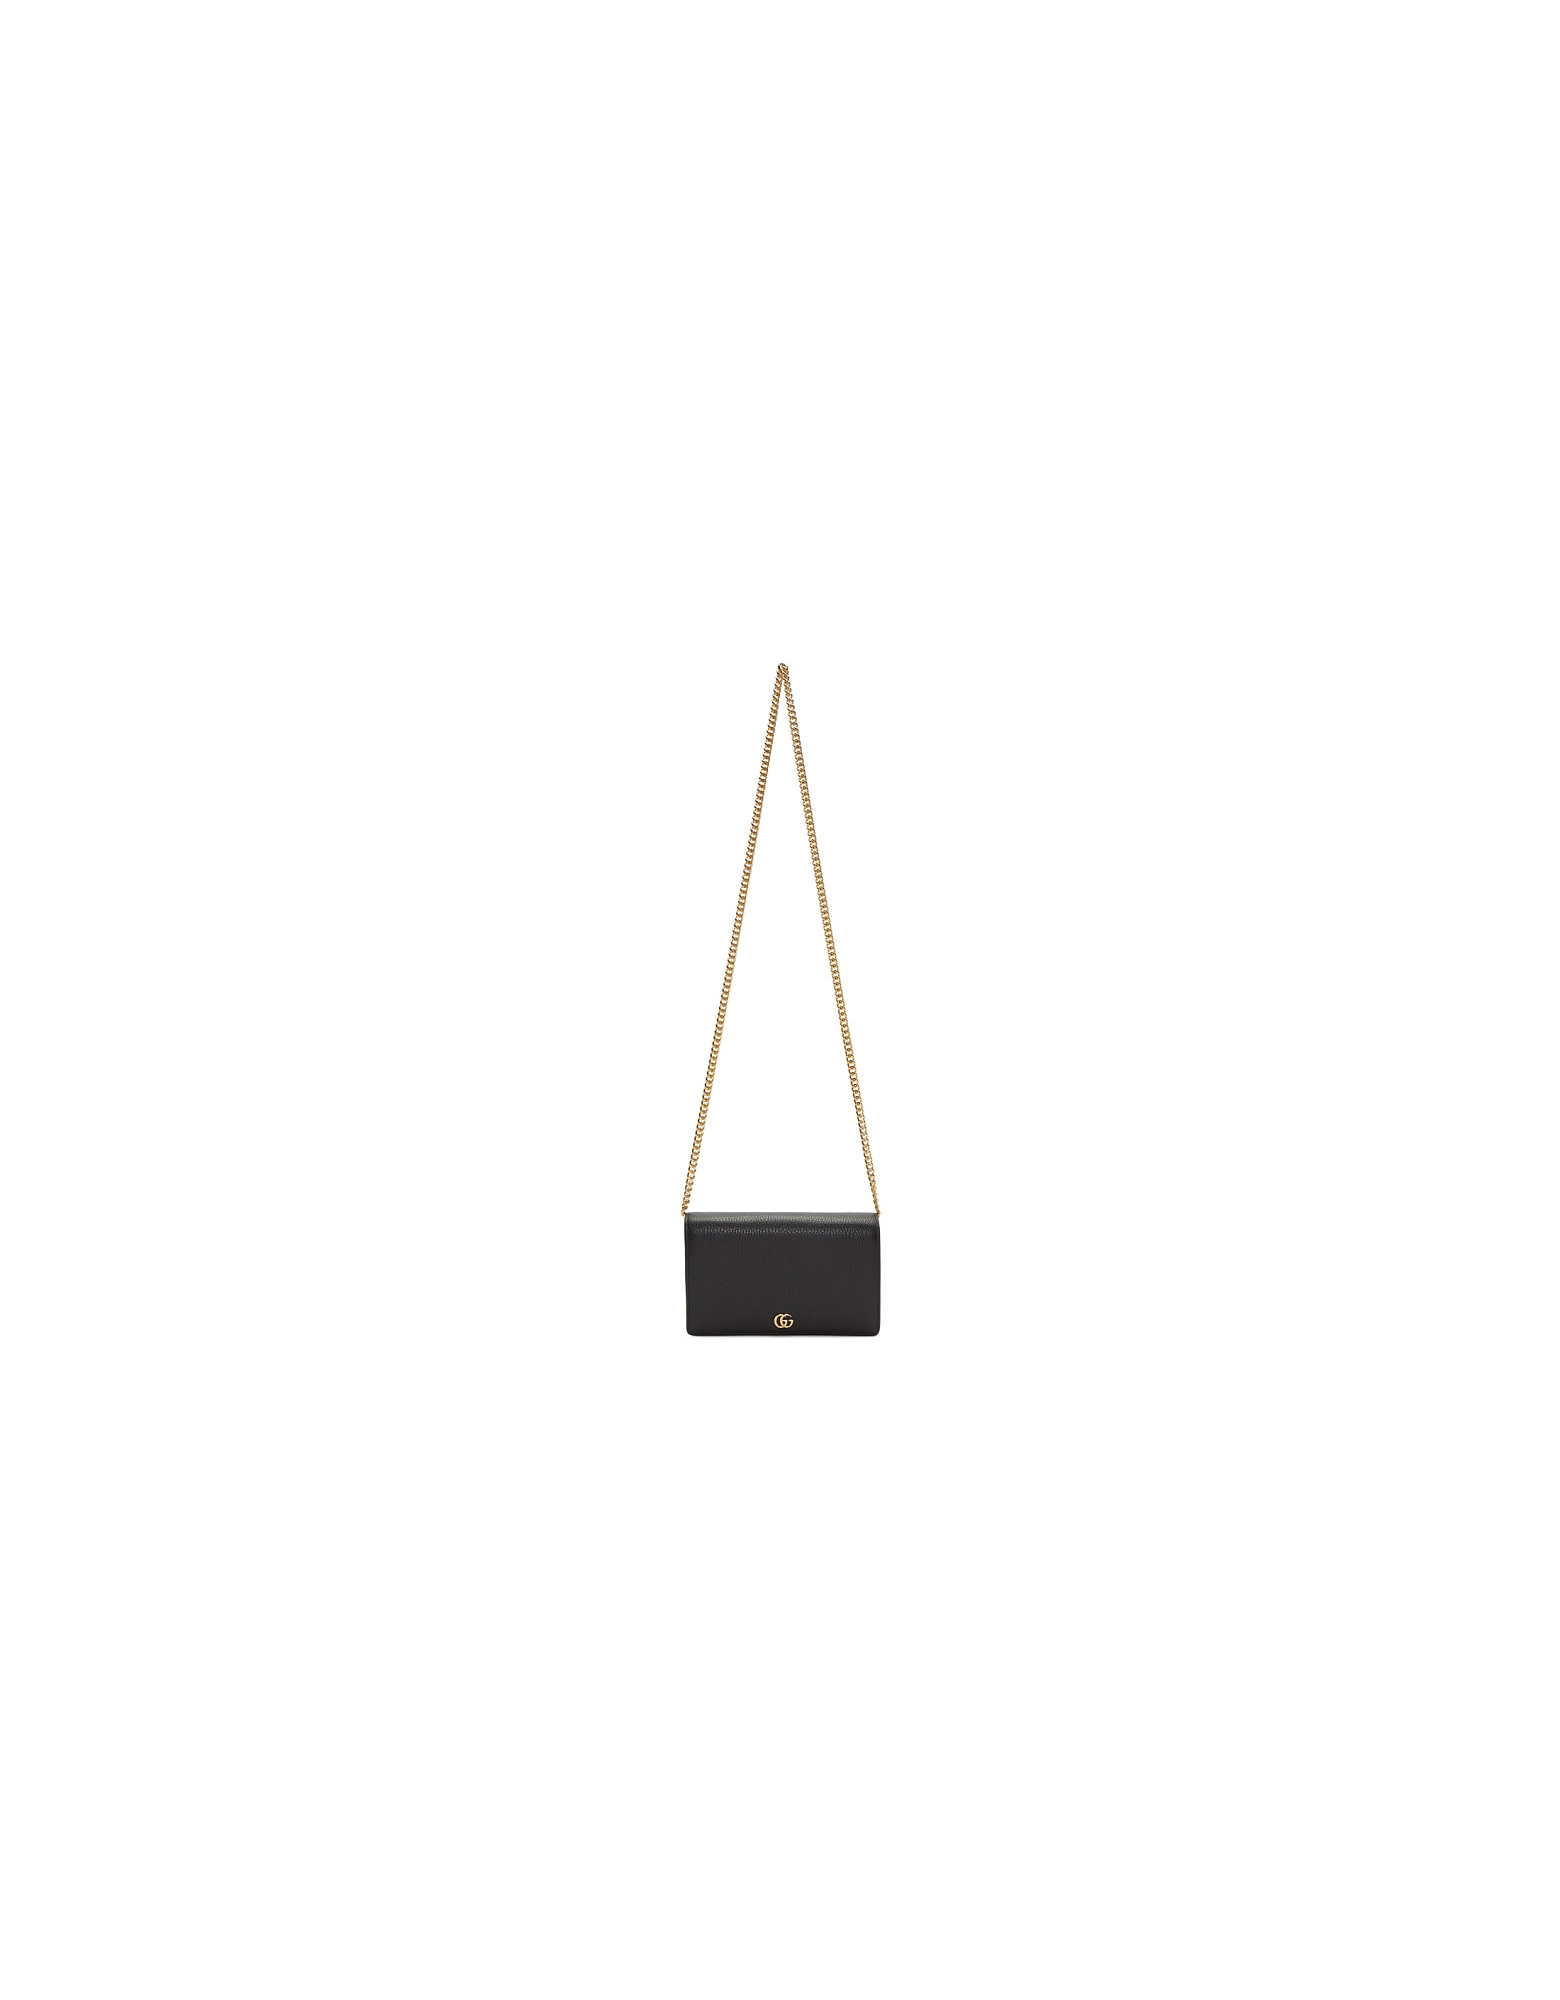 Gucci Designer Handbags, Black Small Marmont Chain Bag